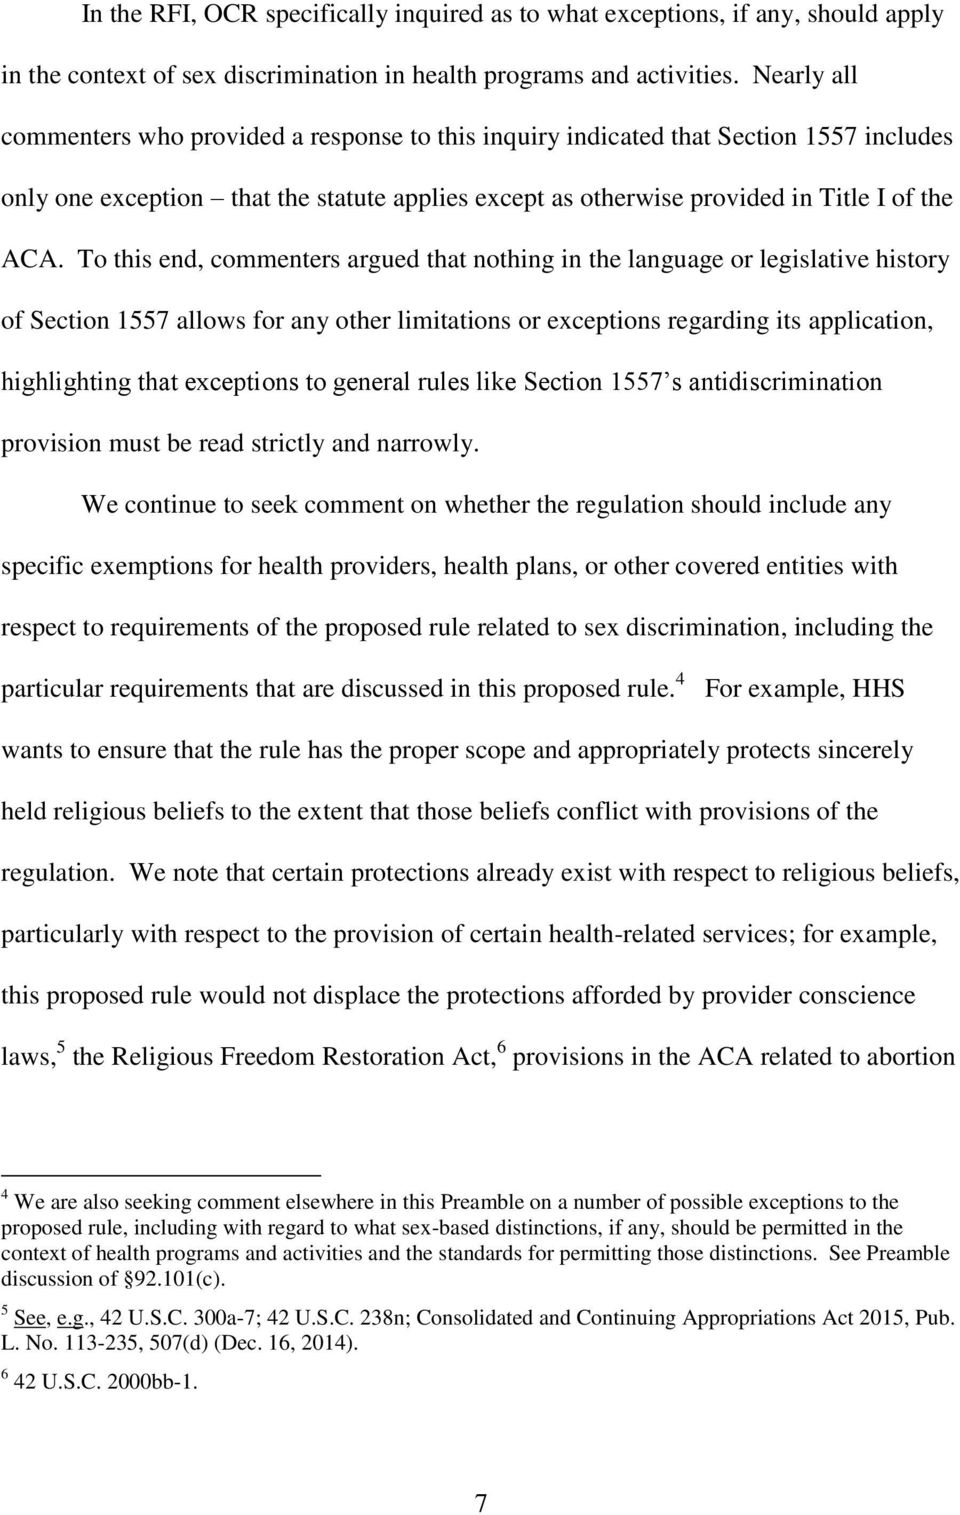 To this end, commenters argued that nothing in the language or legislative history of Section 1557 allows for any other limitations or exceptions regarding its application, highlighting that